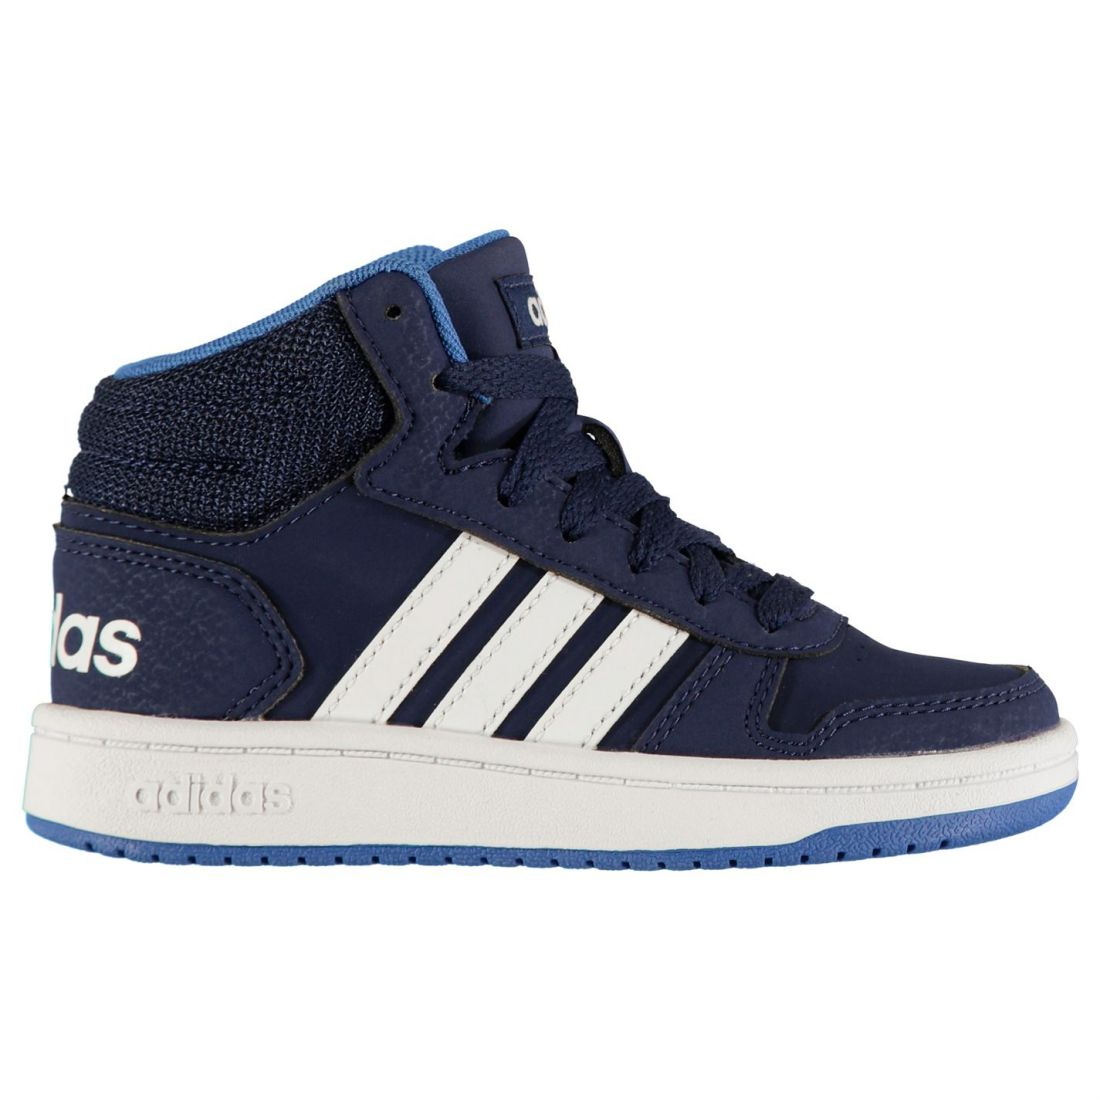 adidas Hoops Mid 2.0 Sneakers Childrens Boys High Top Laces Fastened Padded